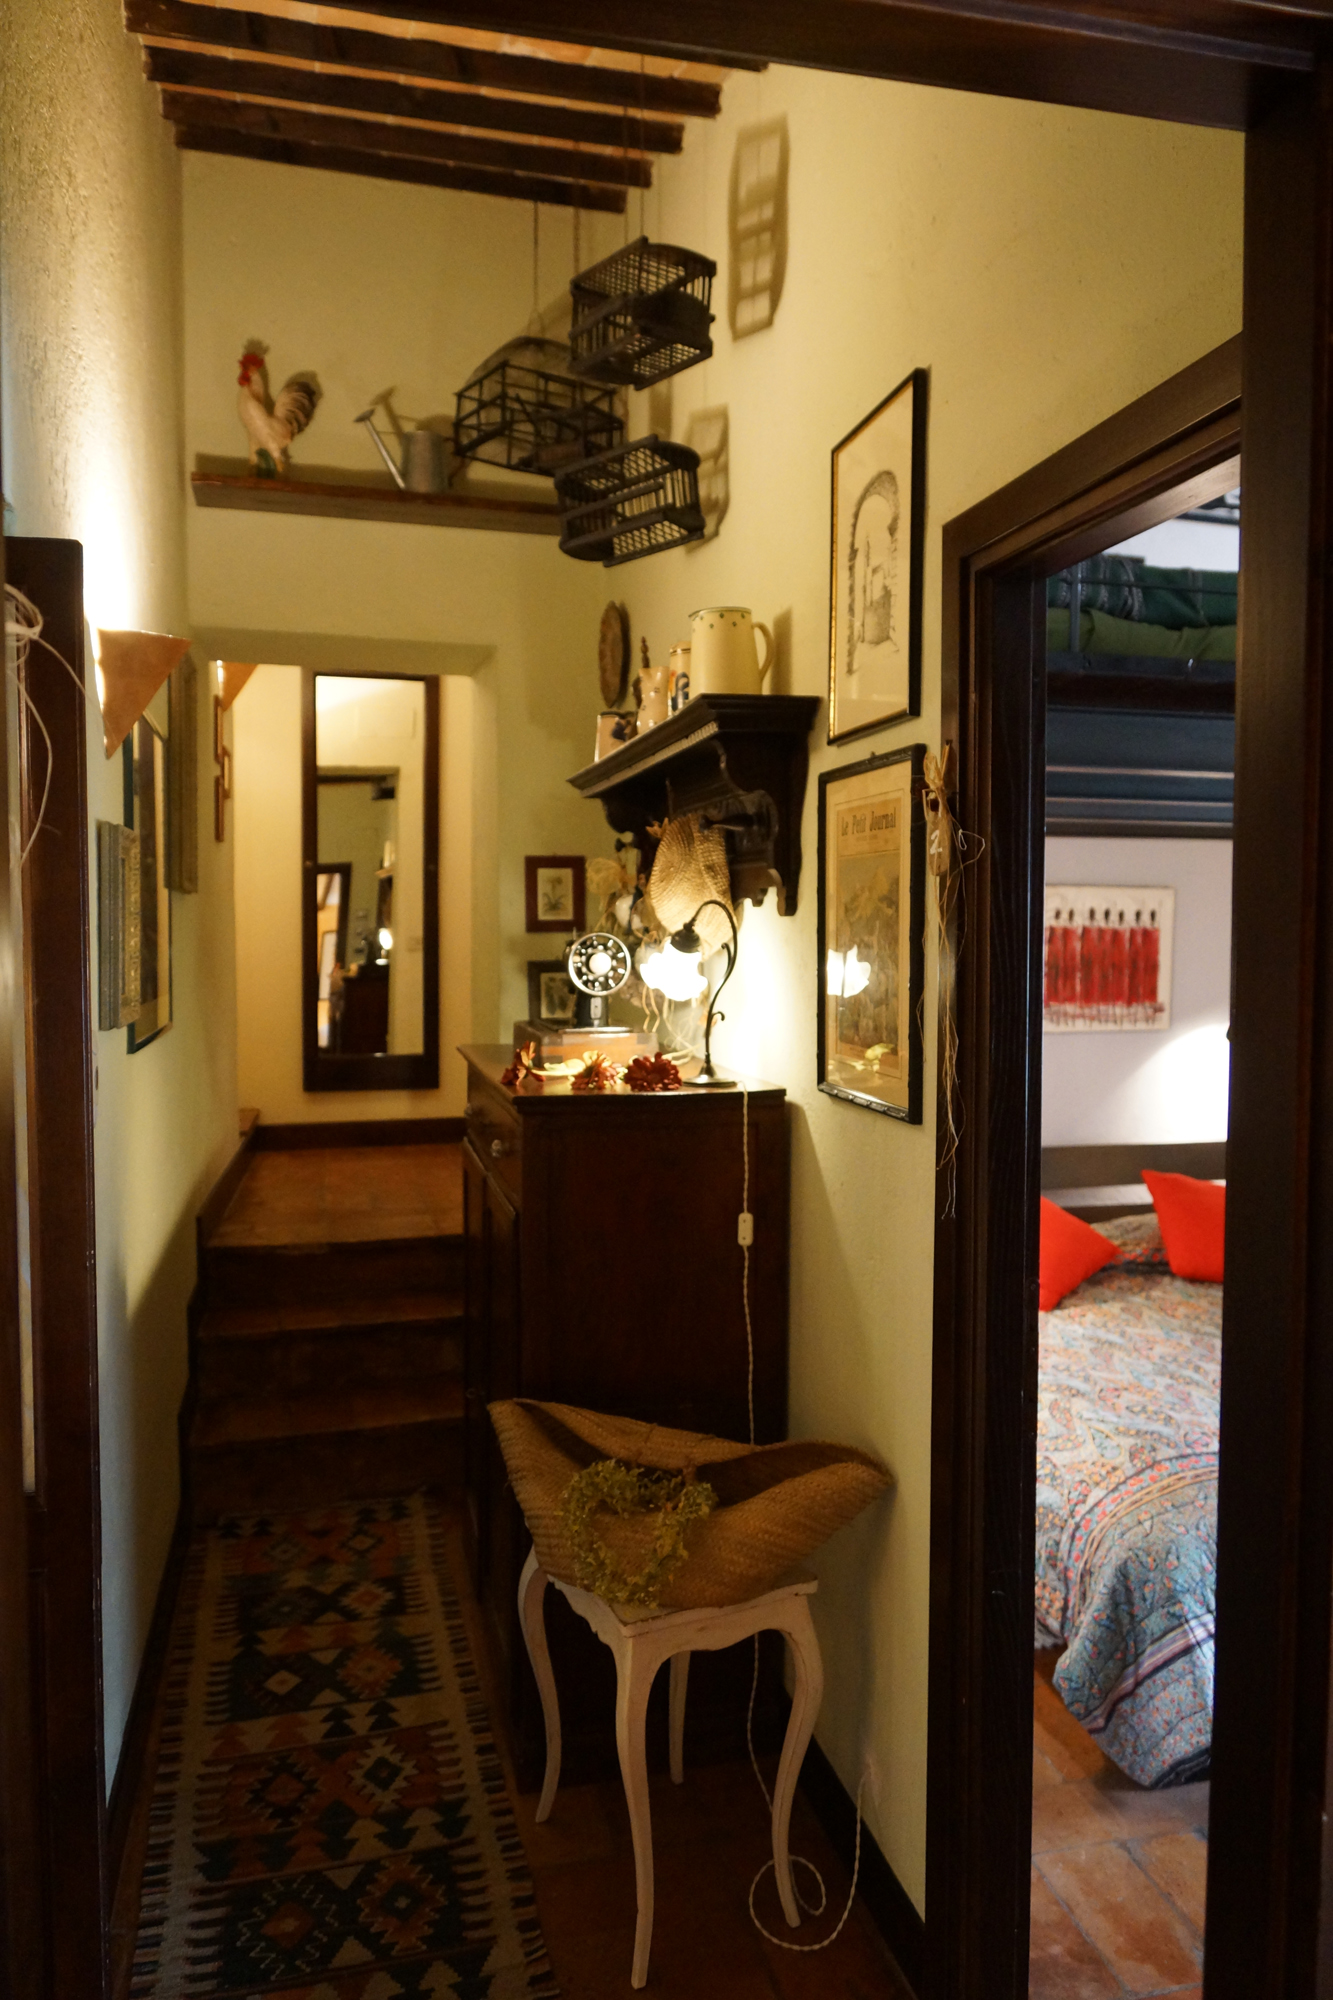 Vacanze in Umbria - Bed & Breakfast - umbria (MASSA MARTANA -  Perugia - PG) ~ corridoio